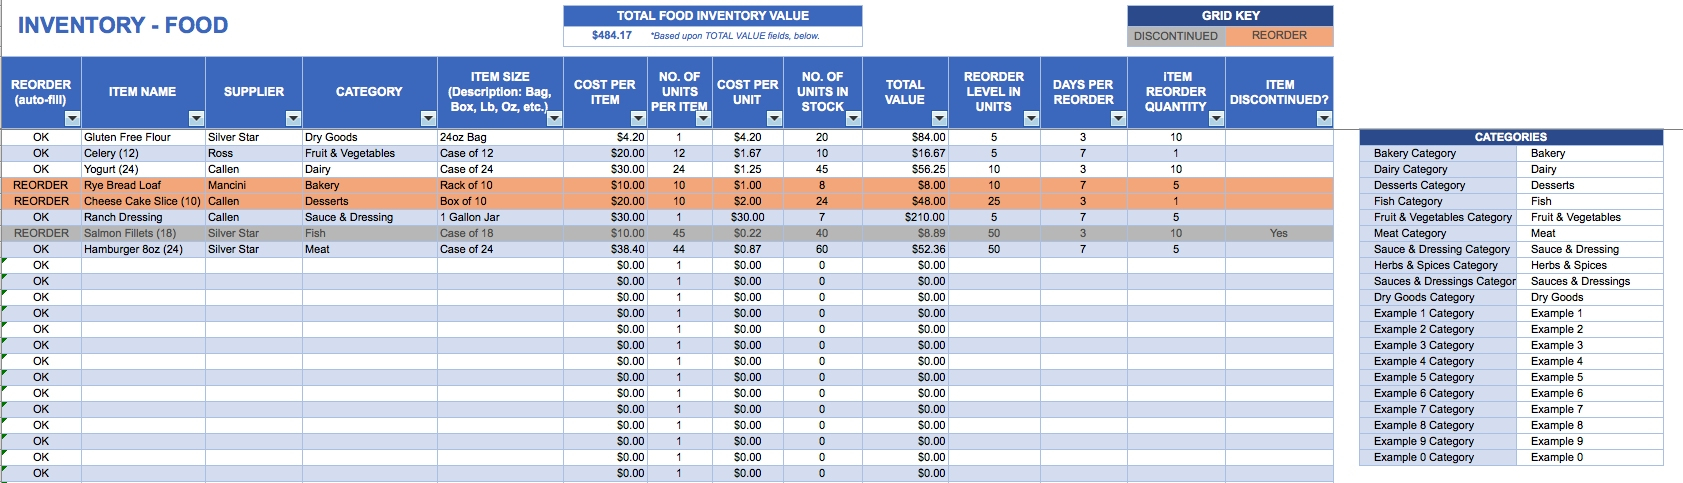 Sample Inventory Spreadsheet Food 0 Perfect So Template – Coocourses In Sample Inventory Spreadsheet